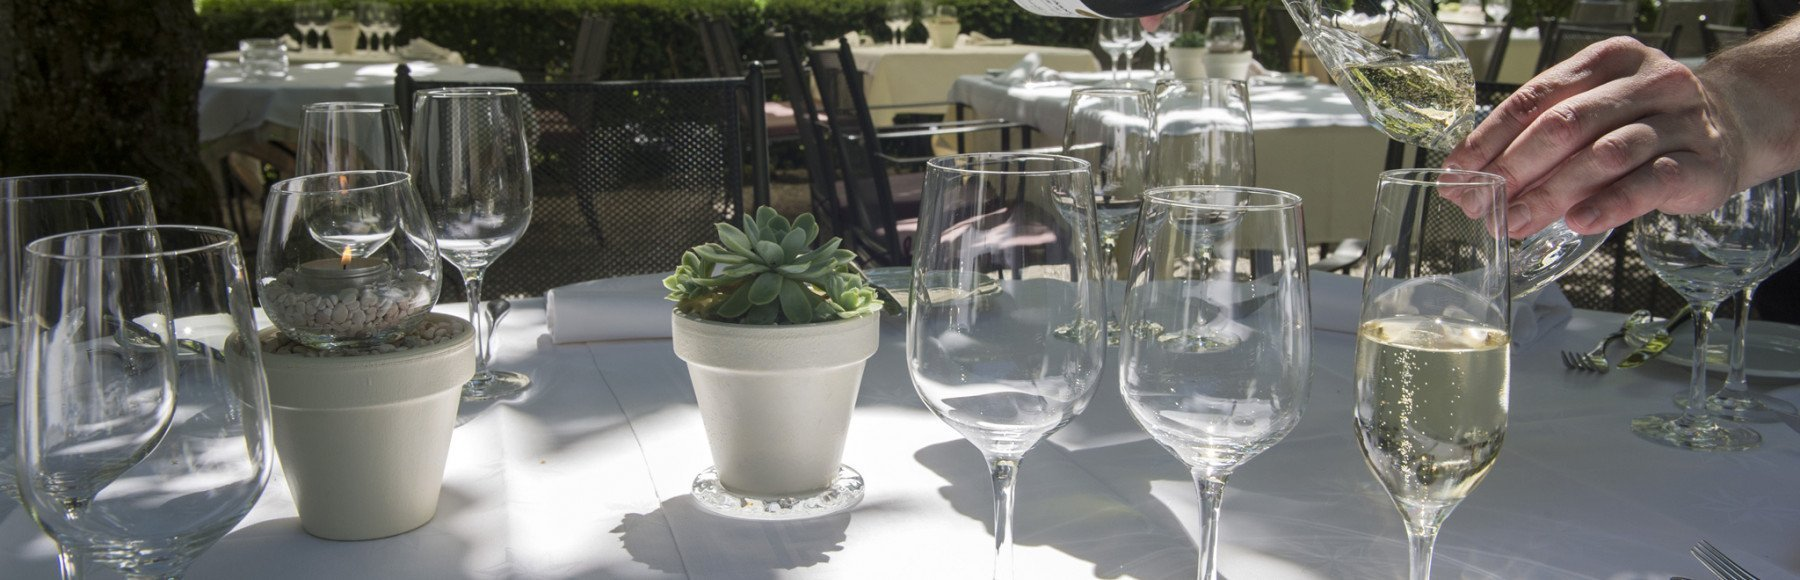 Table in the garden with glasses and sparkling wine